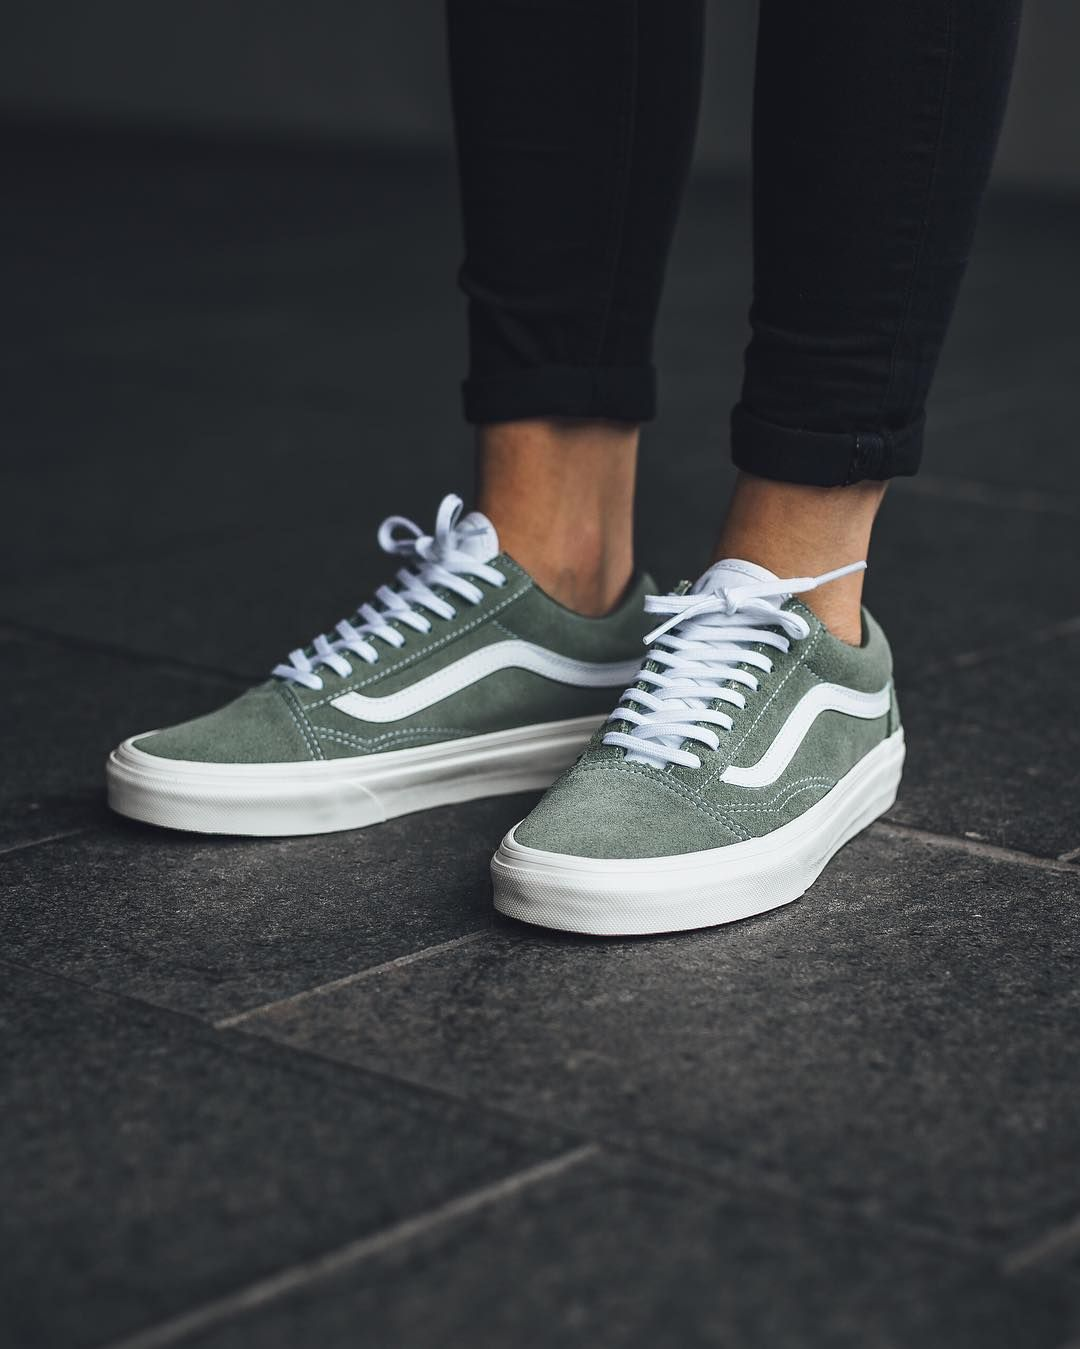 989260a0f91 VANS Old Skool